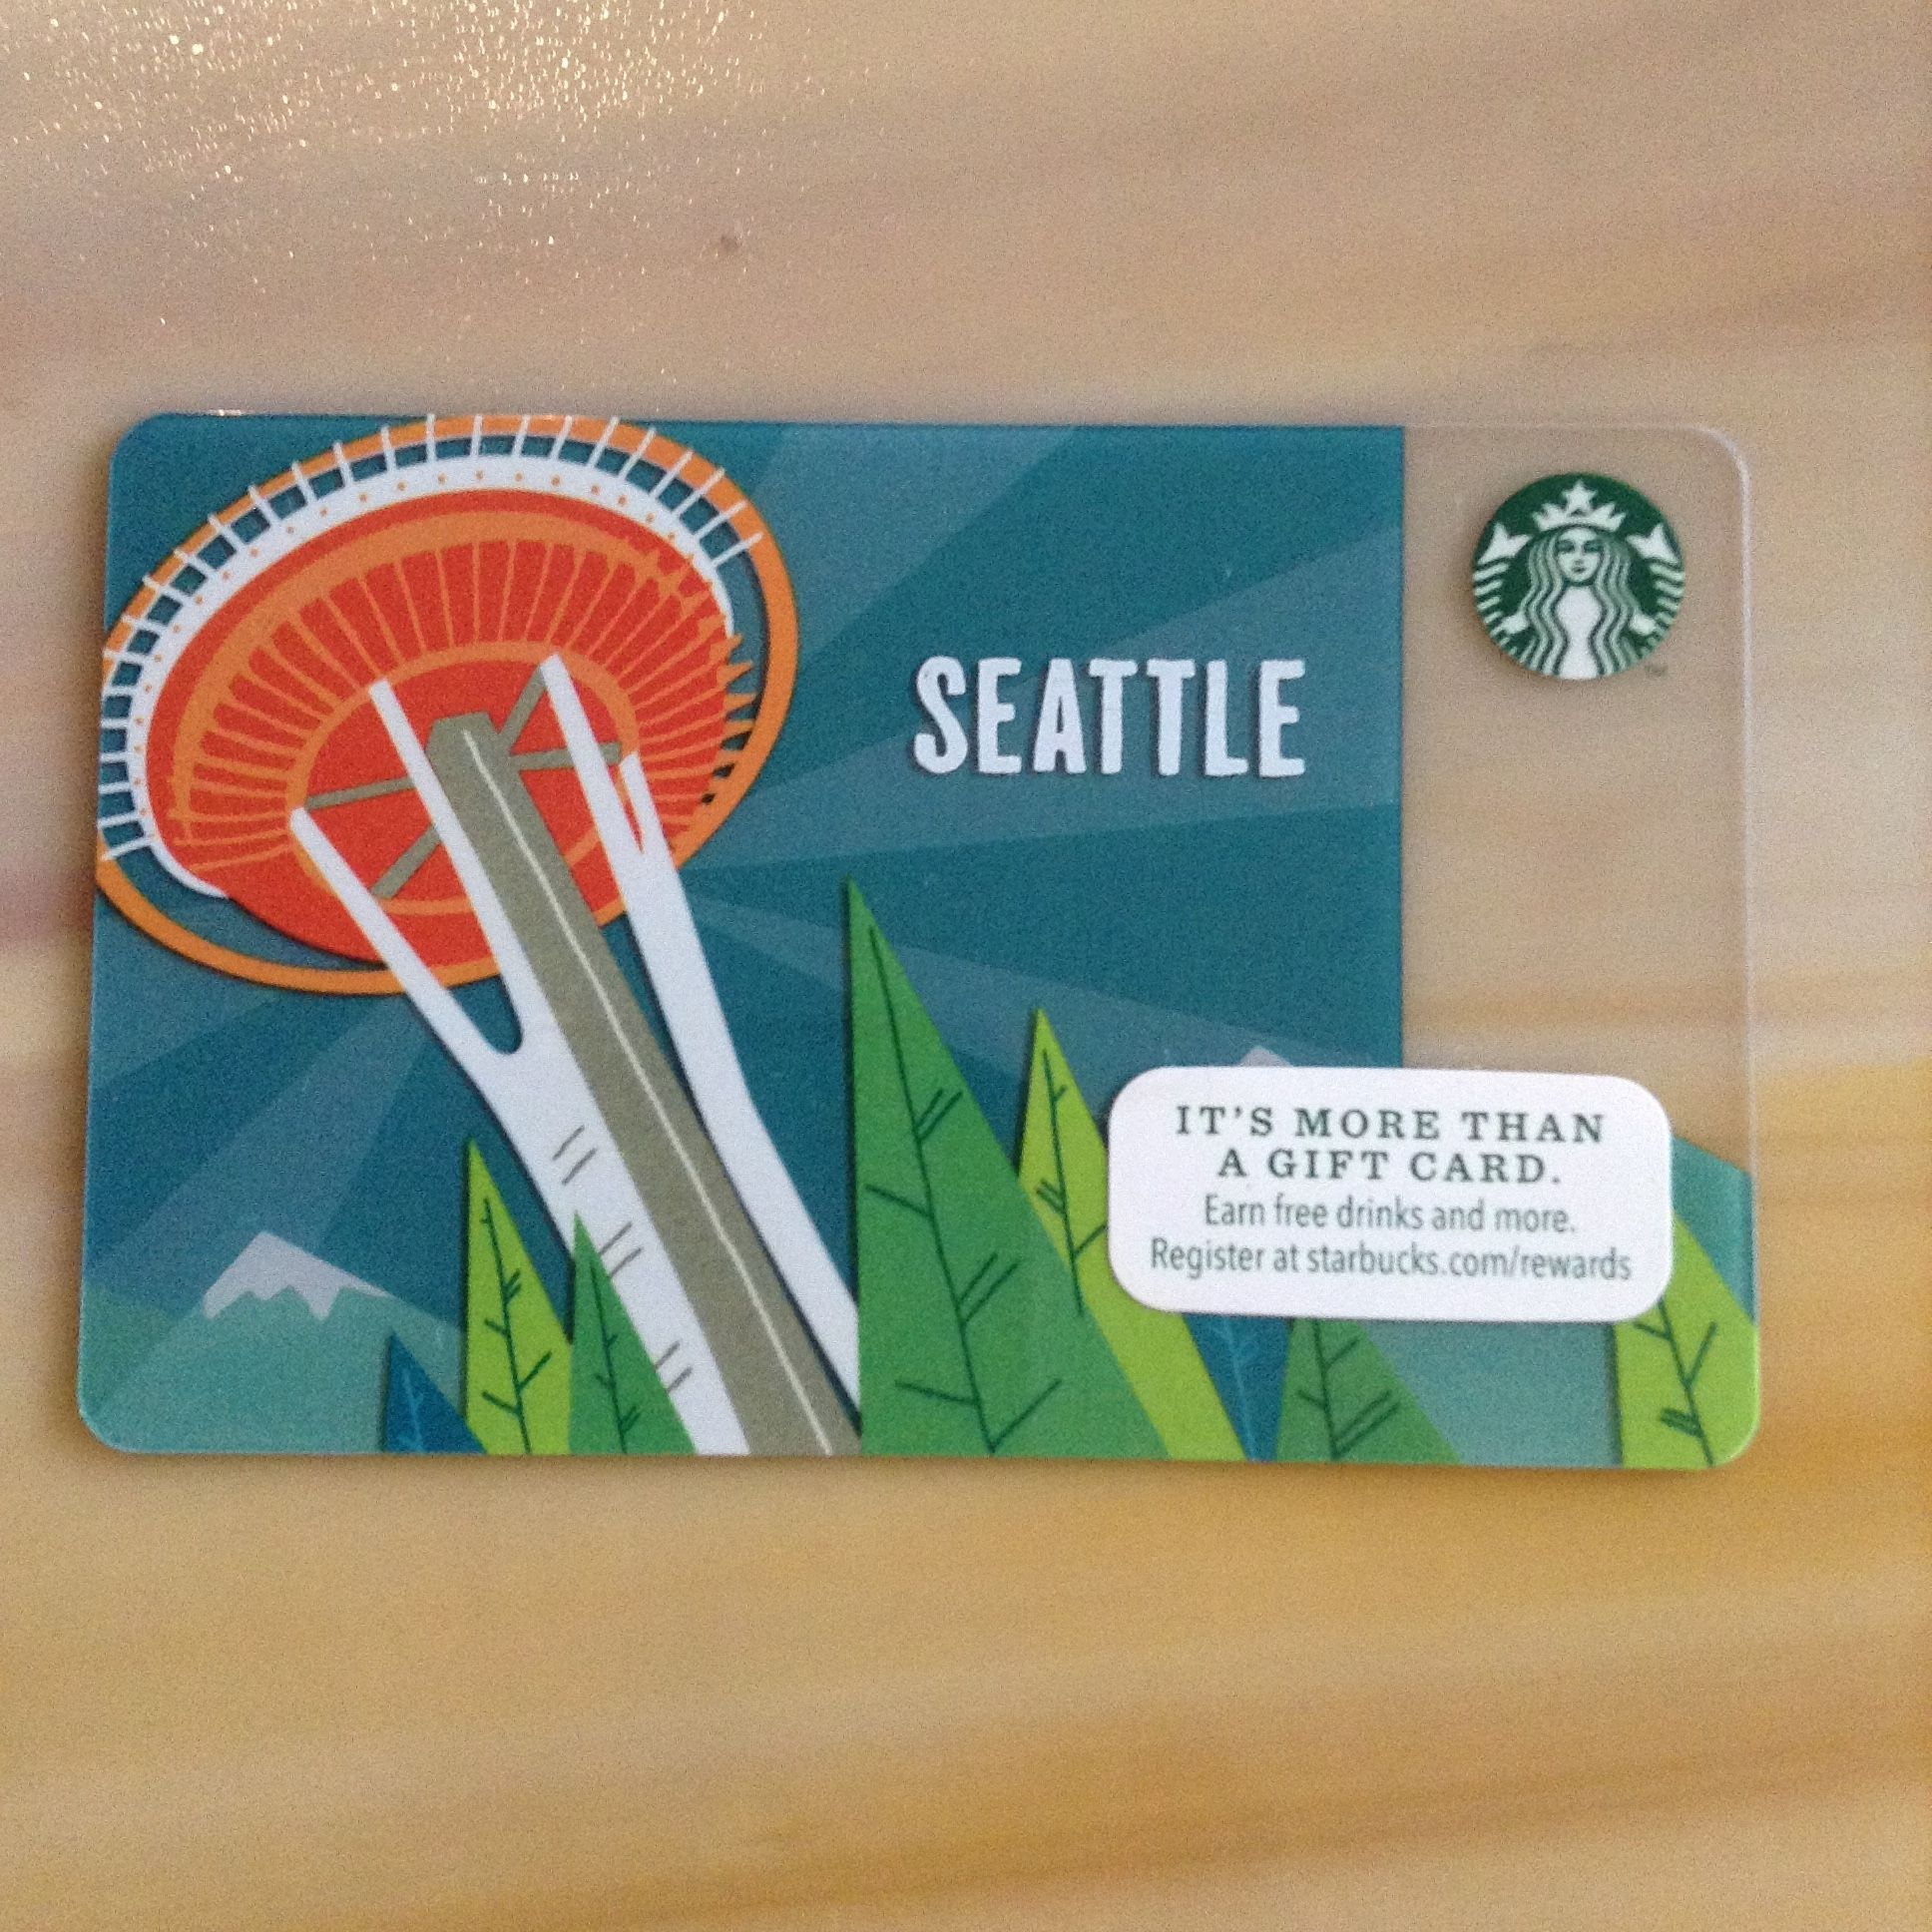 This card was available in select seattle and surrounding